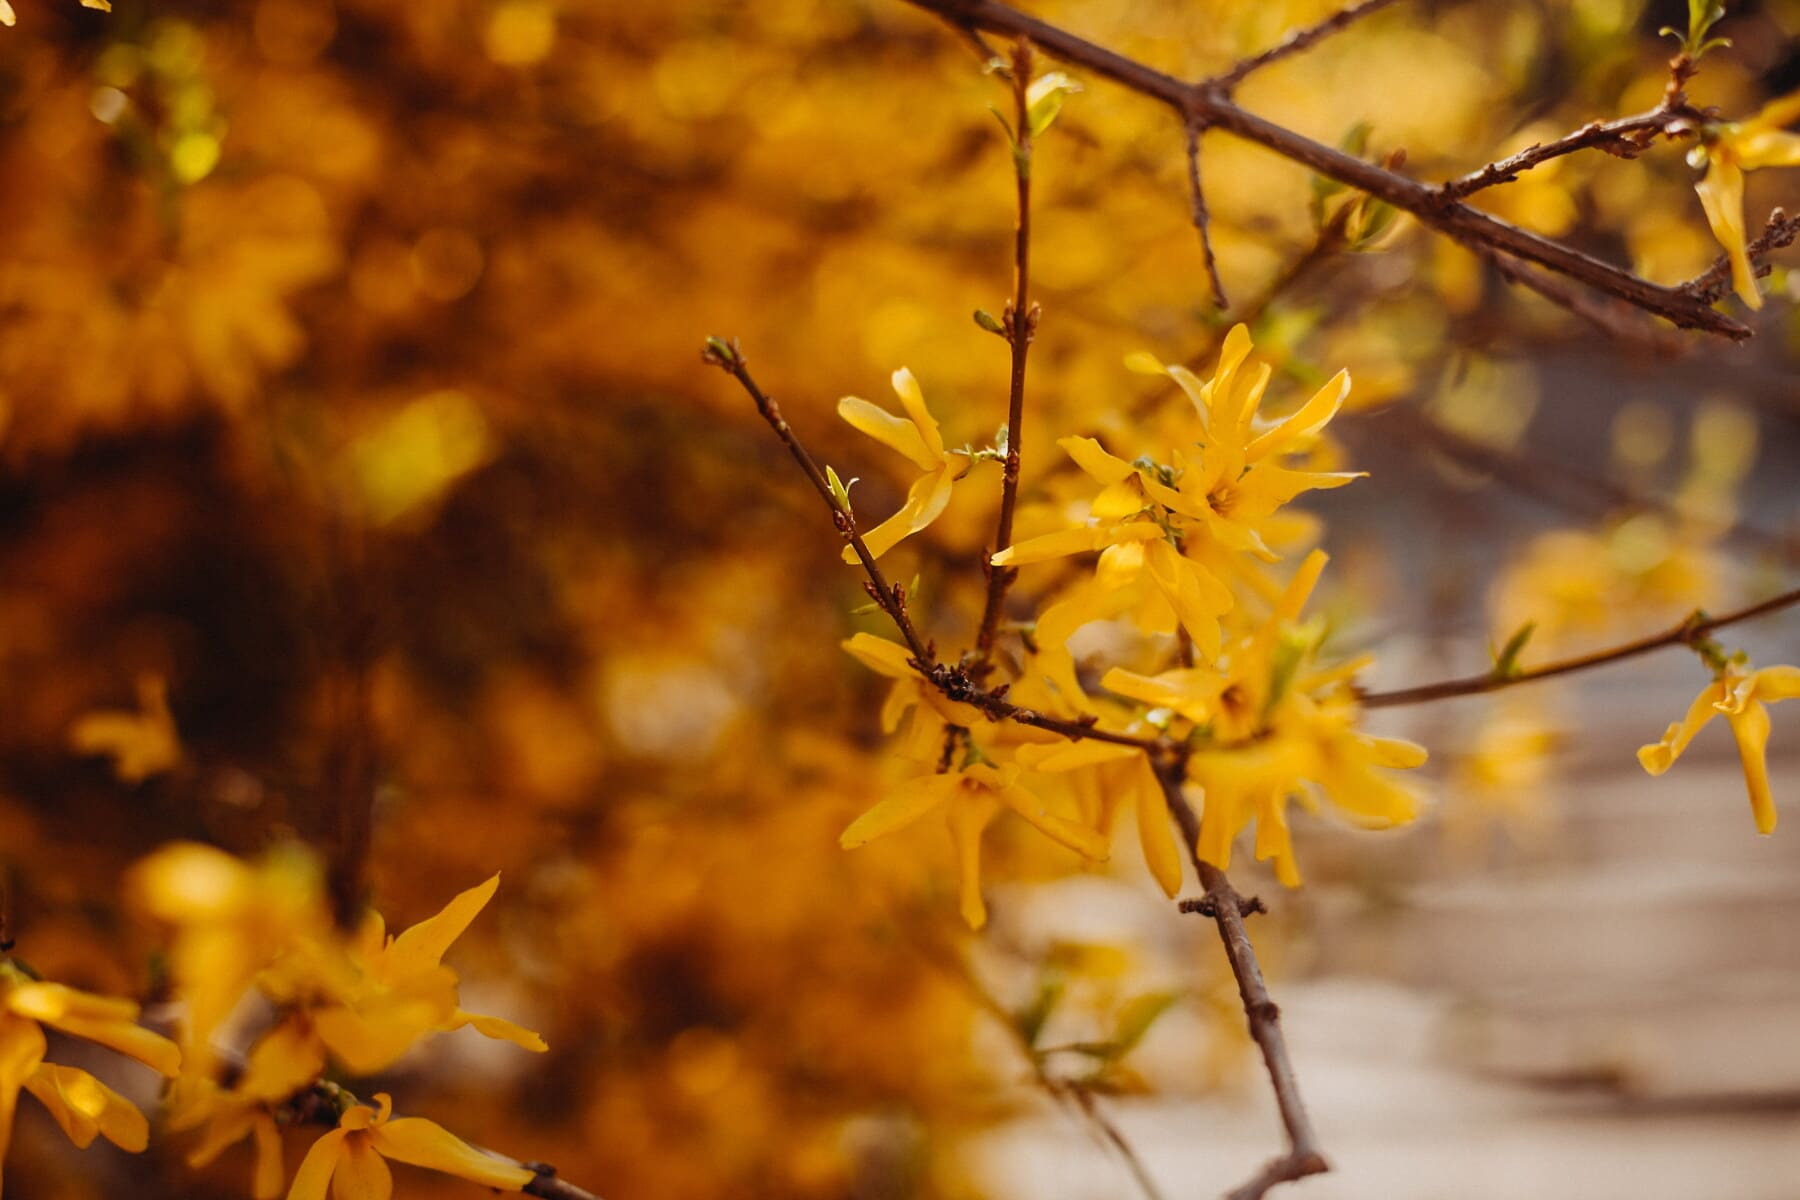 bush, branches, branchlet, yellowish brown, leaves, yellow, flowers, nature, leaf, shrub